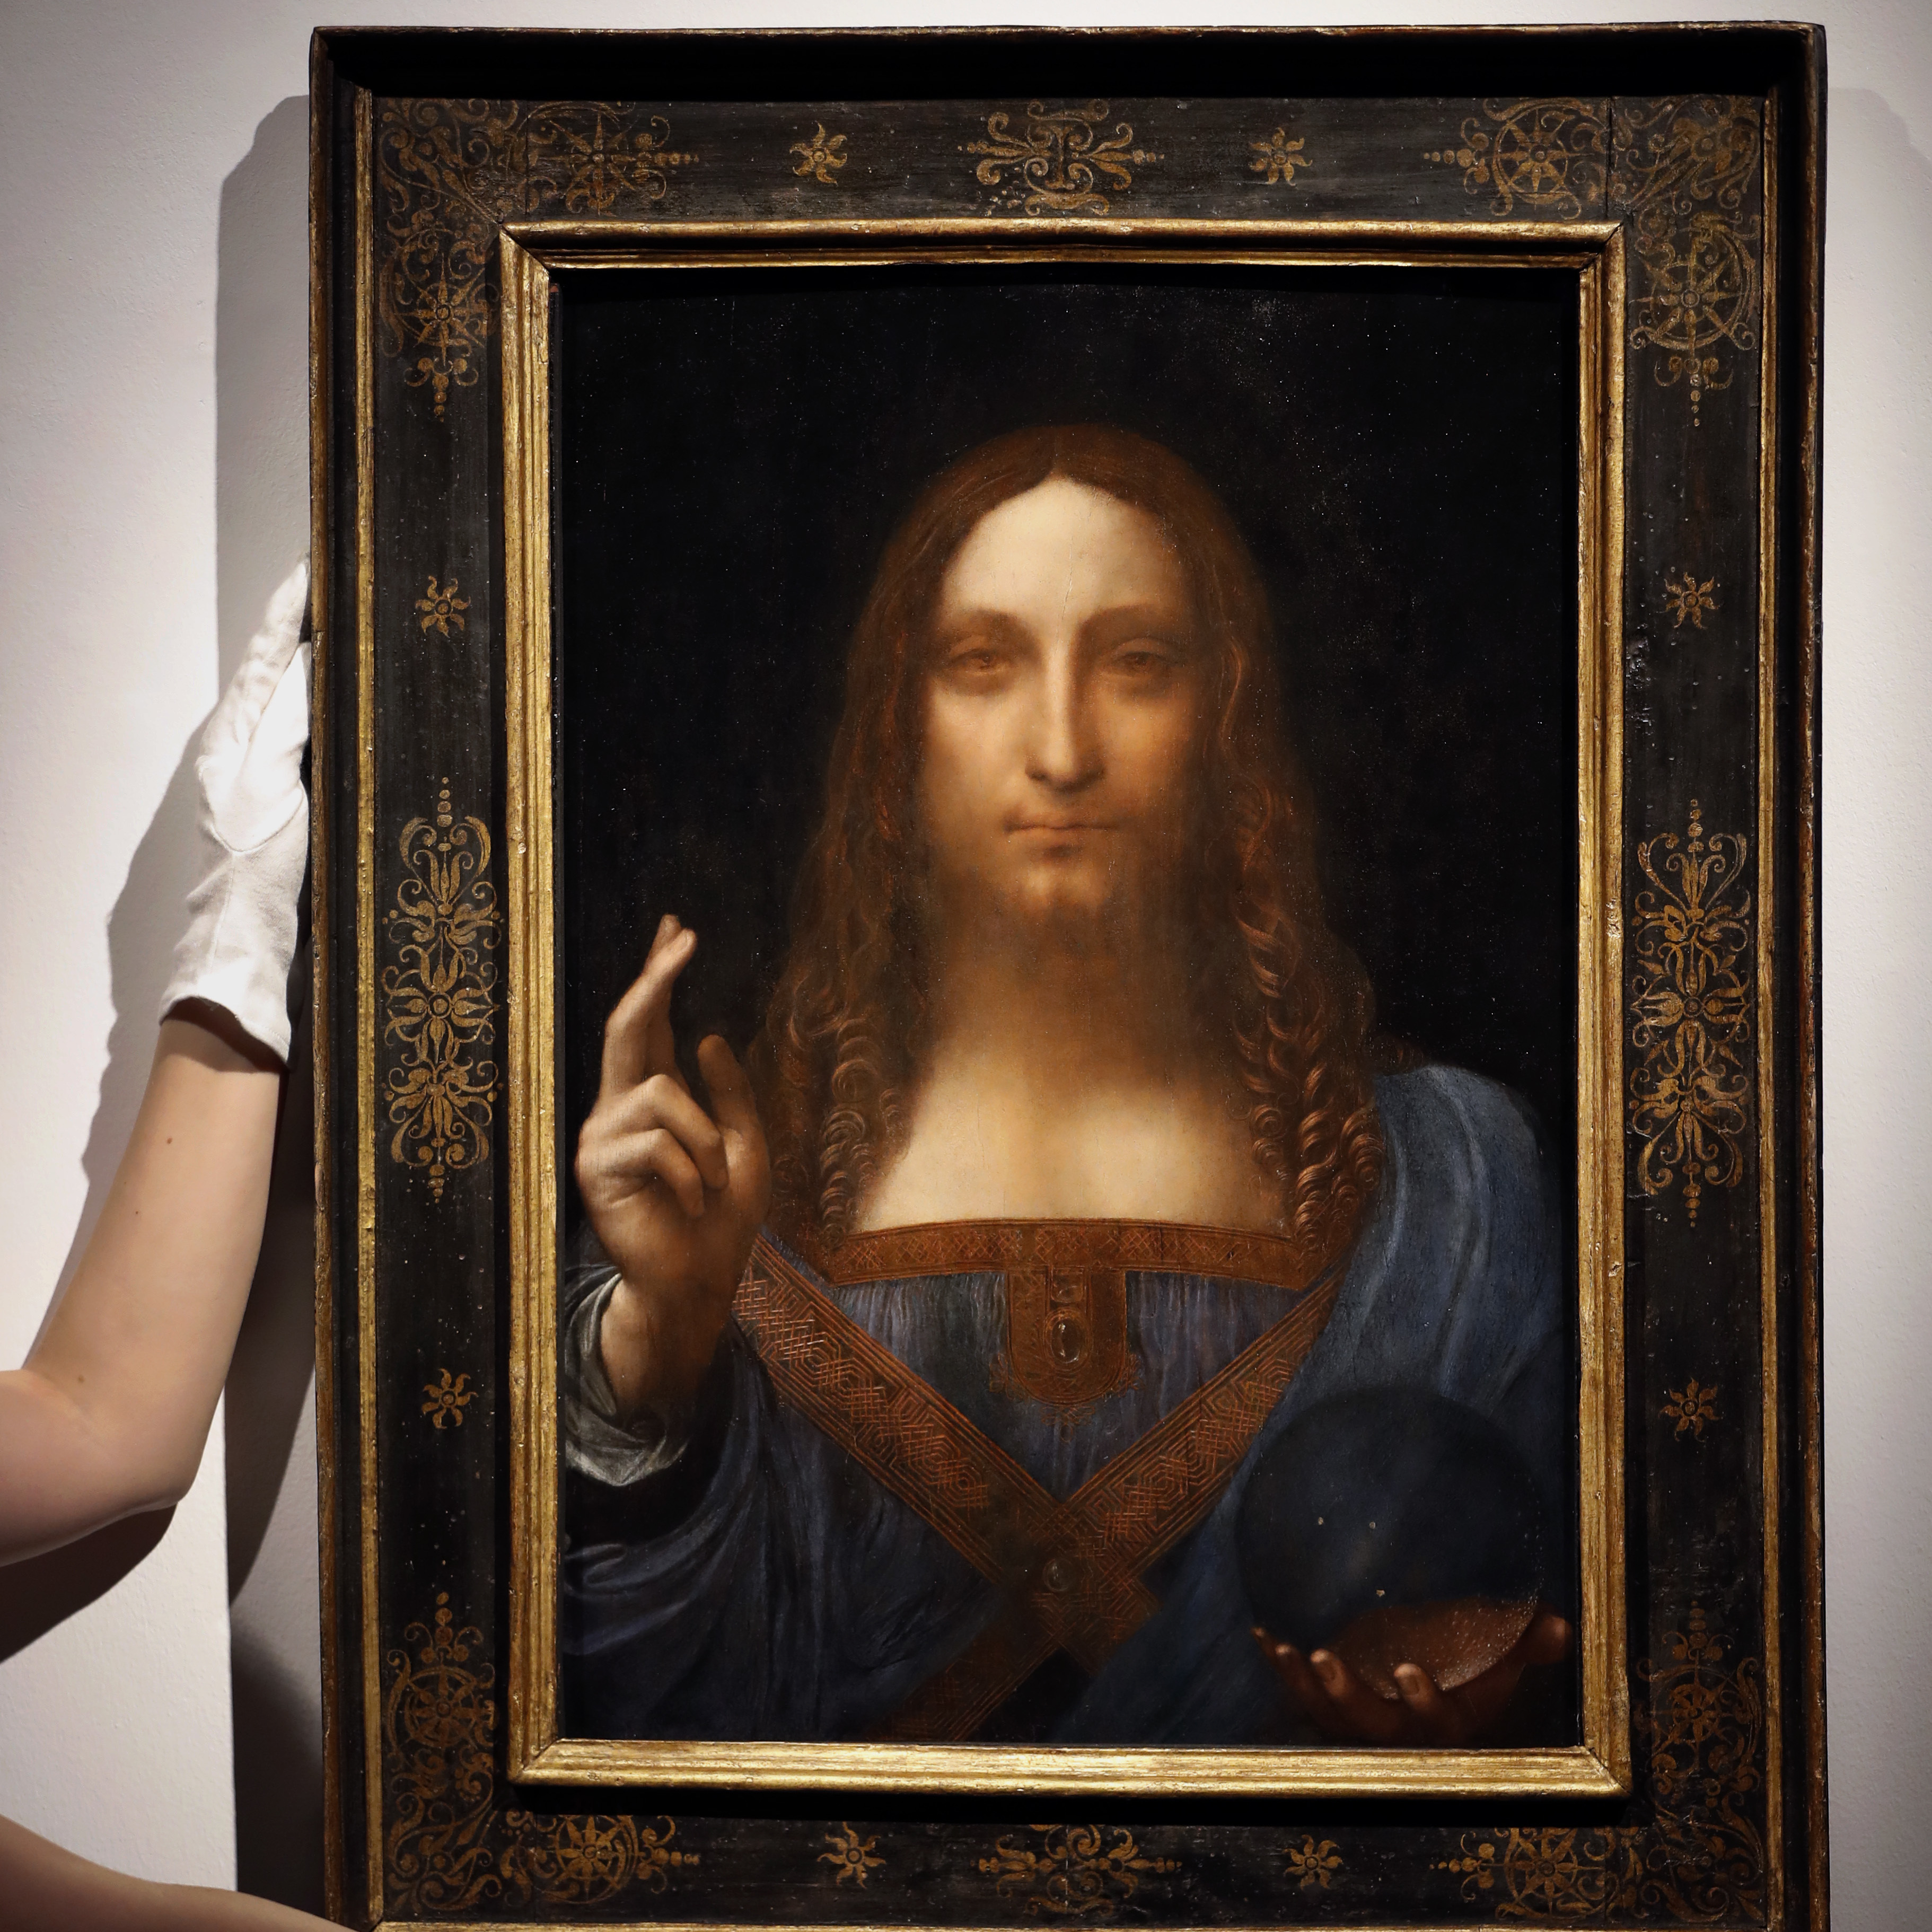 Da Vinci work fetches record $611m